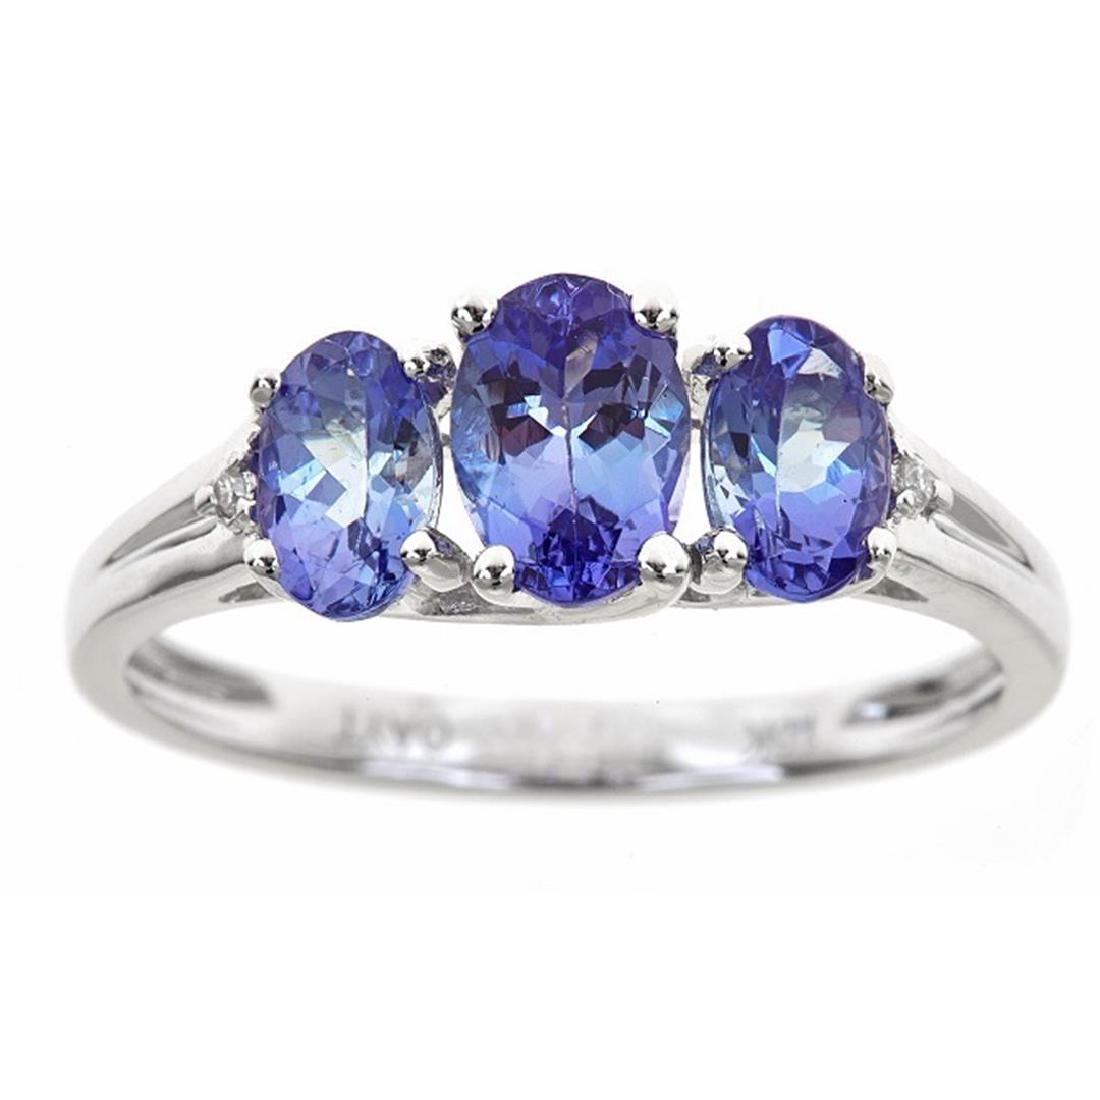 1.67 ctw Tanzanite and Diamond Ring - 10KT White Gold